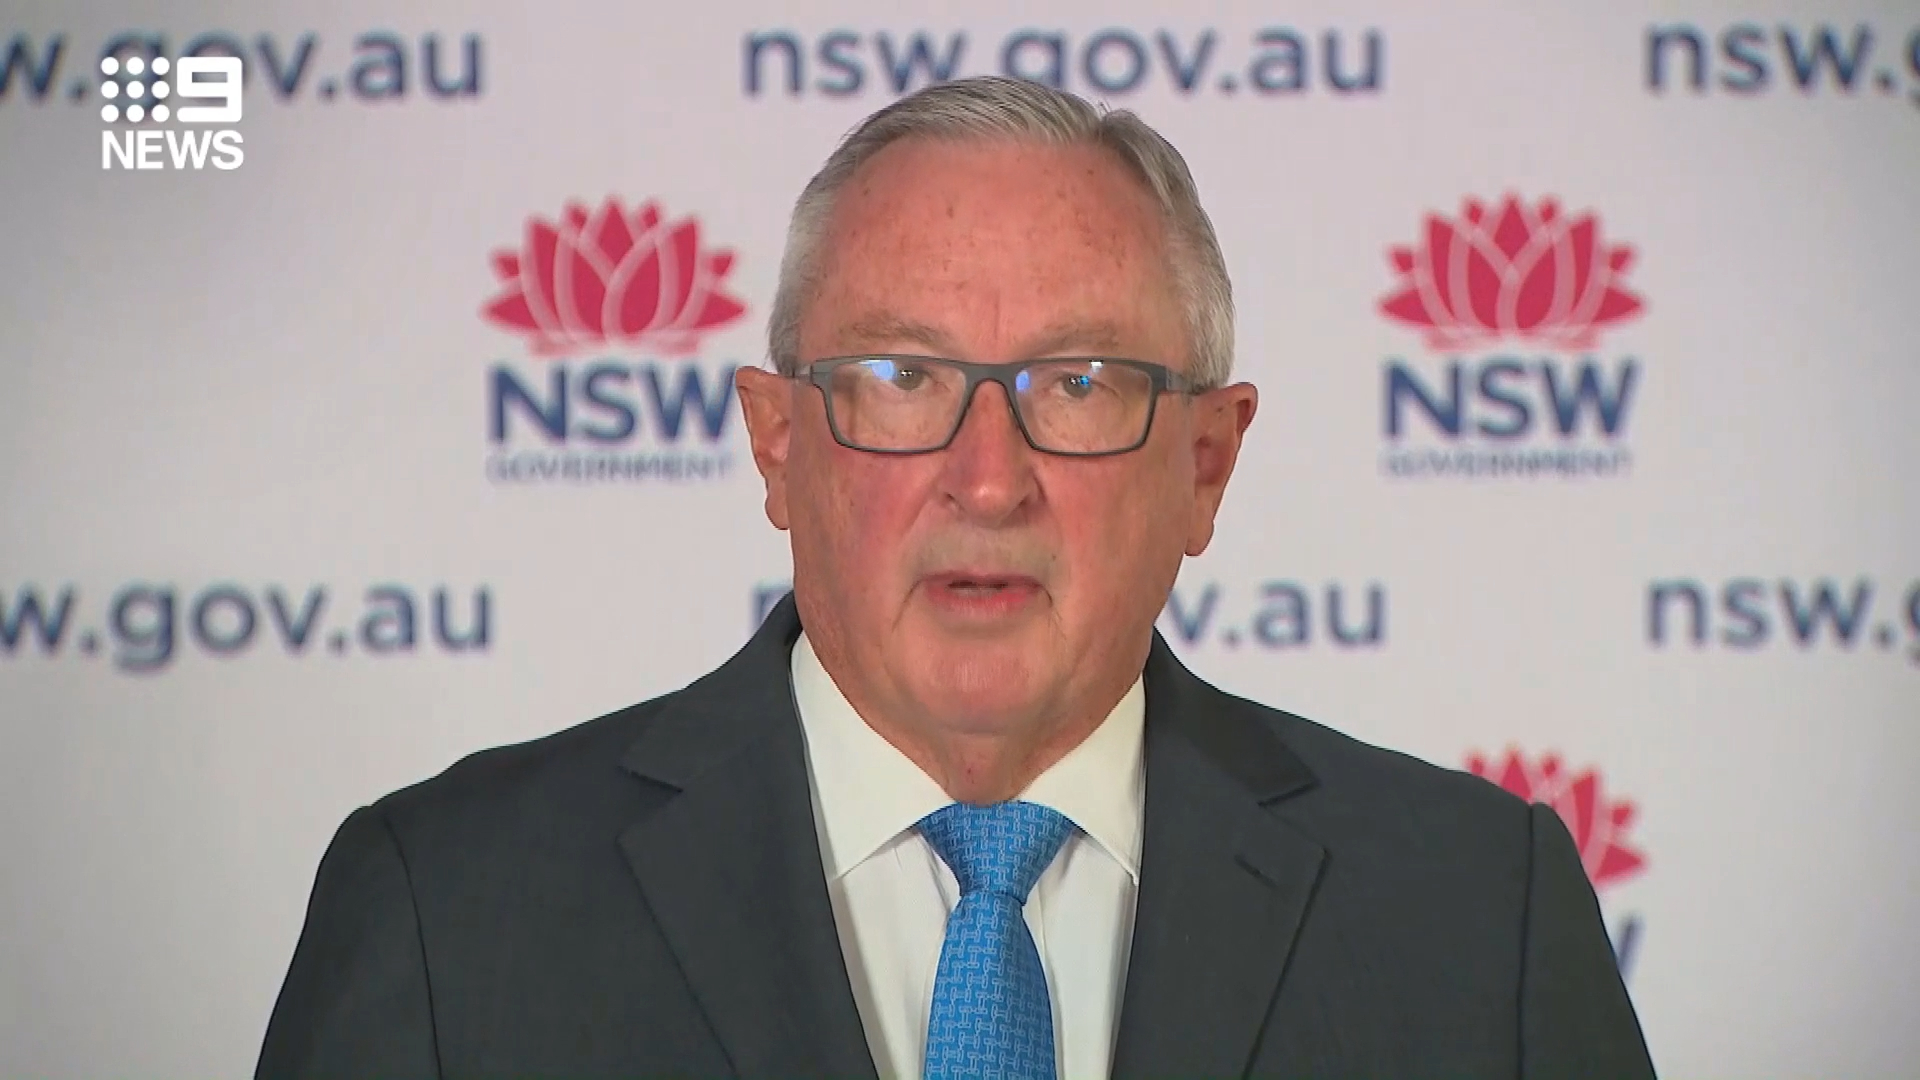 NSW records 1022 new local COVID-19 cases and 10 deaths